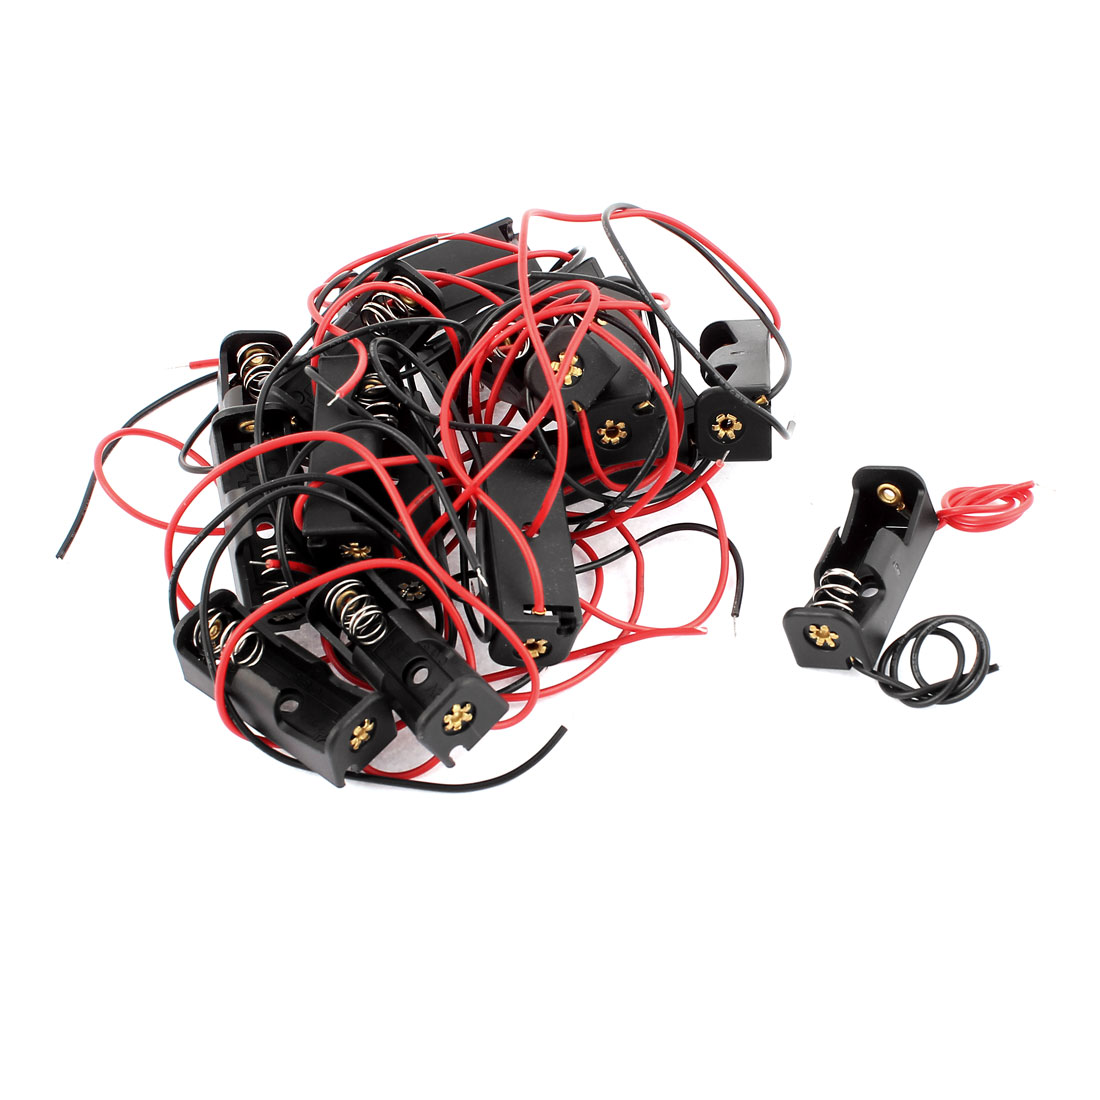 16 Pcs 12V 23A Battery Cell Case Wire Holder Black Plastic 35 x 13 x 12mm